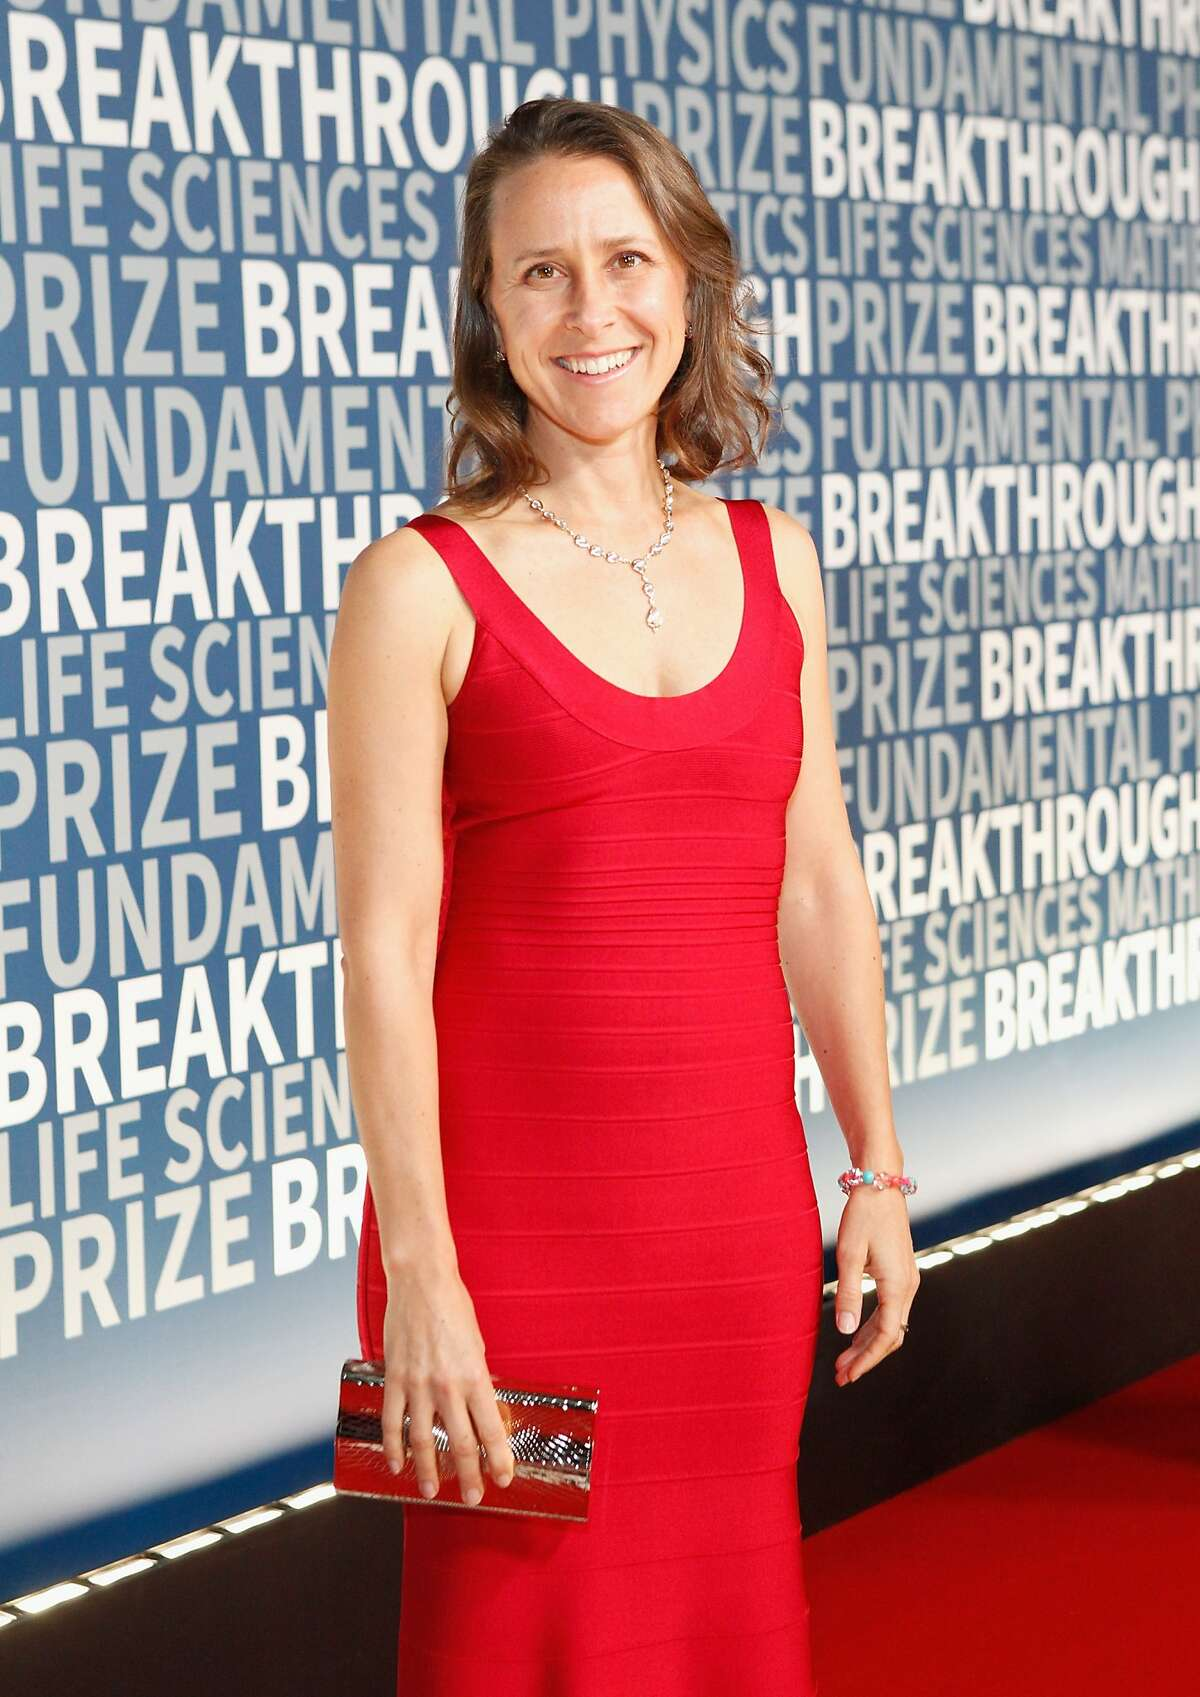 Biologist Anne Wojcicki attends the 2016 Breakthrough Prize Ceremony on November 8, 2015 in Mountain View, California. (Photo by Kimberly White/Getty Images for Breakthrough Prize)